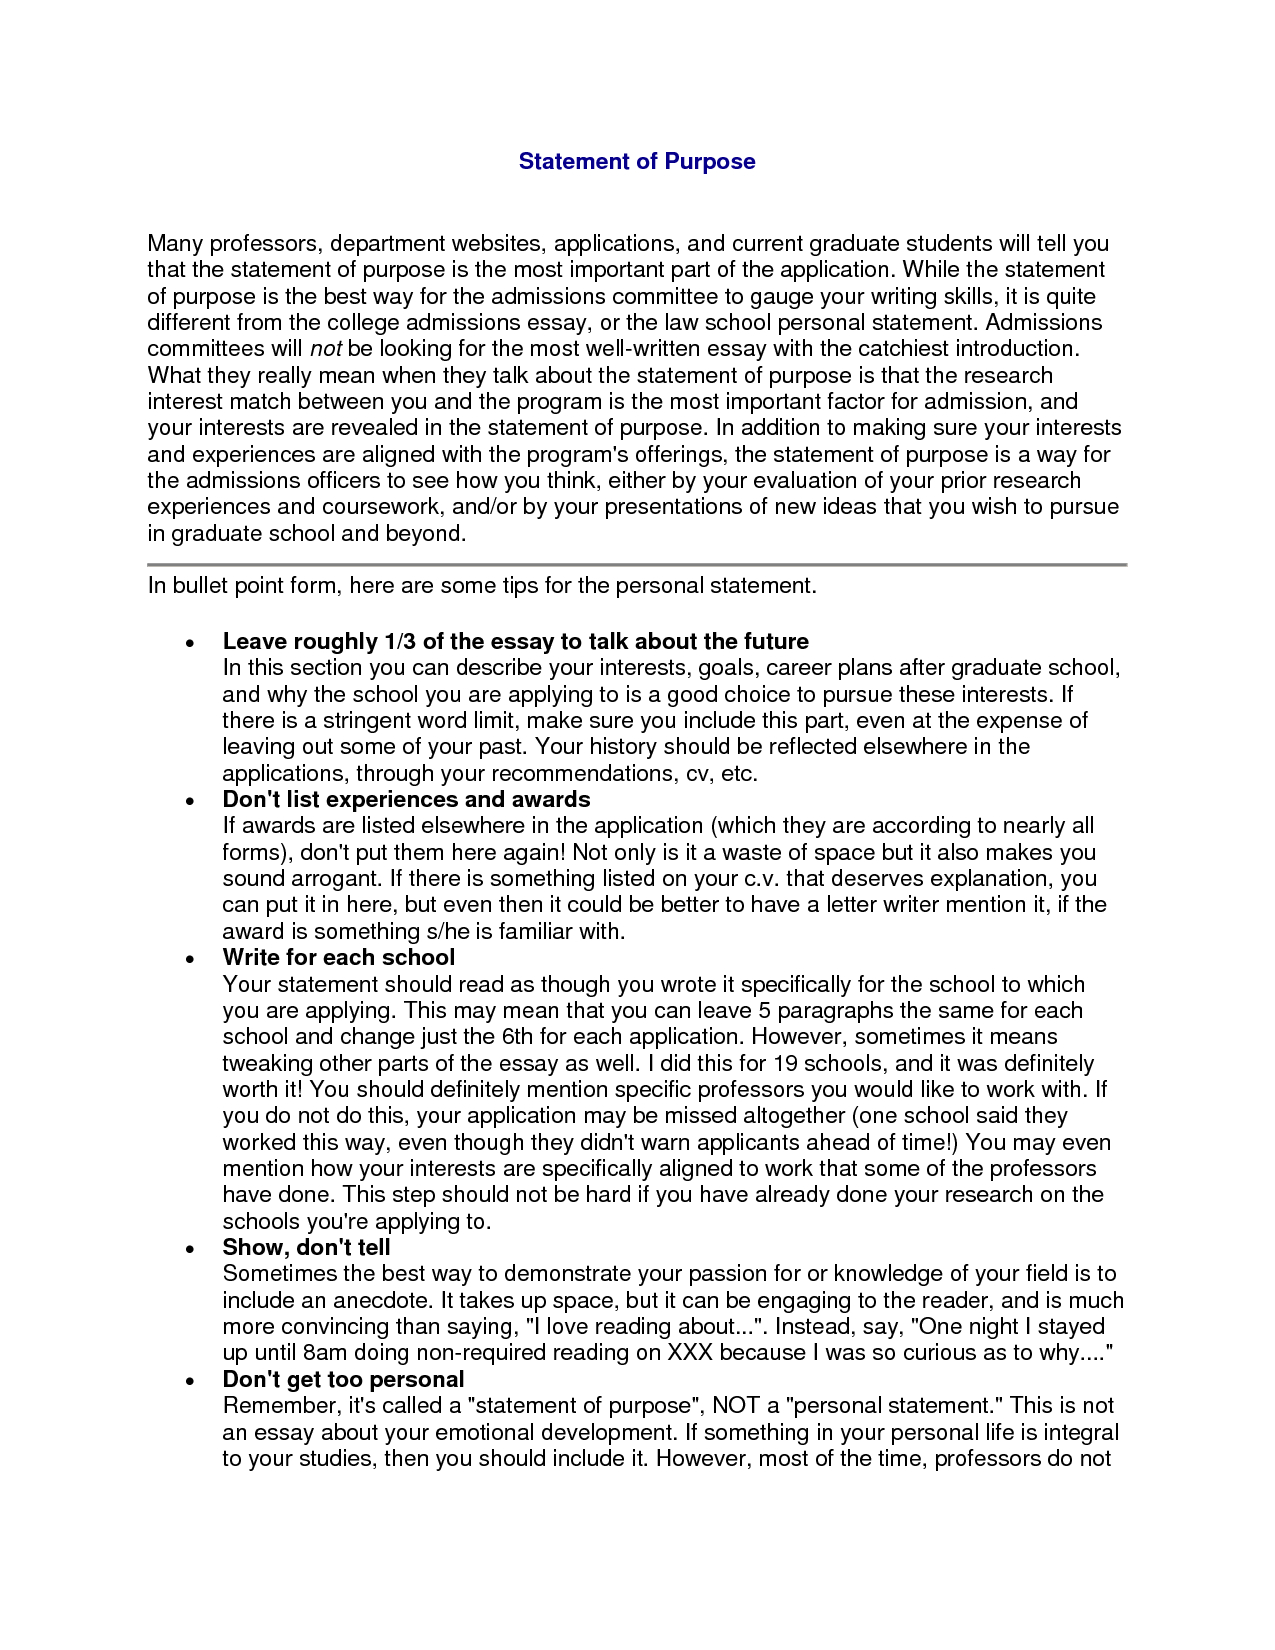 Letter Of Intent Template Graduate School - Doctoral Letter Intent Picture High Template Graduate School Phd